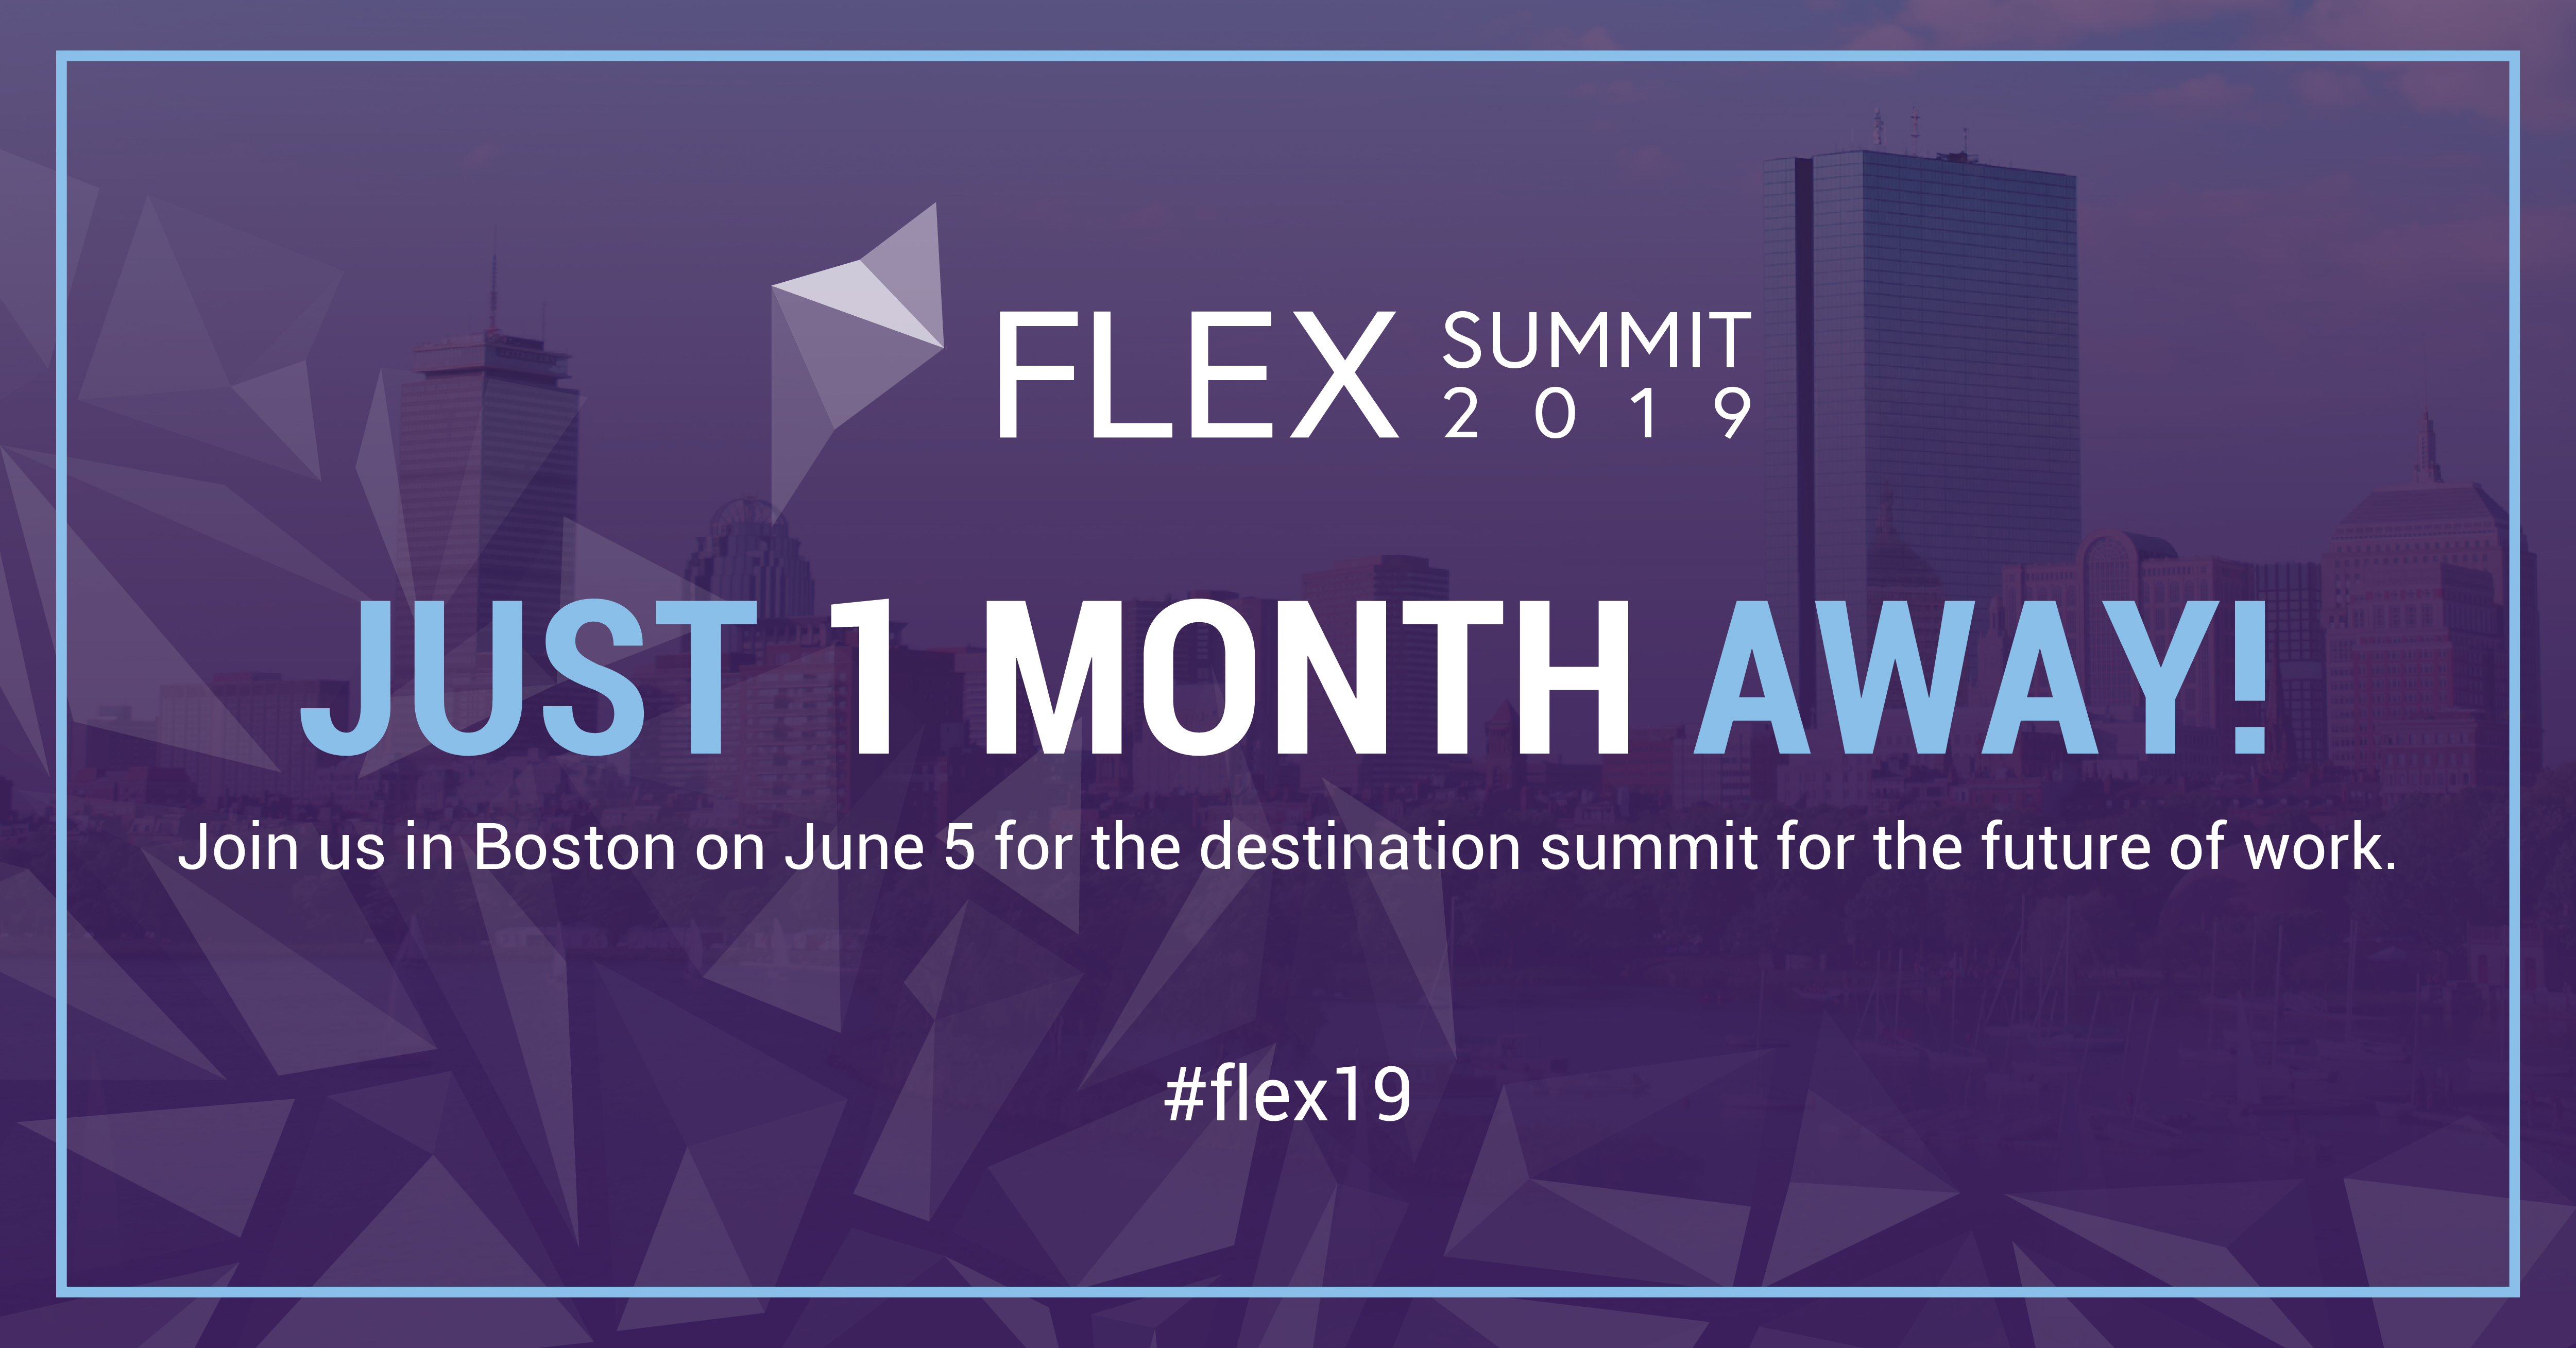 Flex Summit